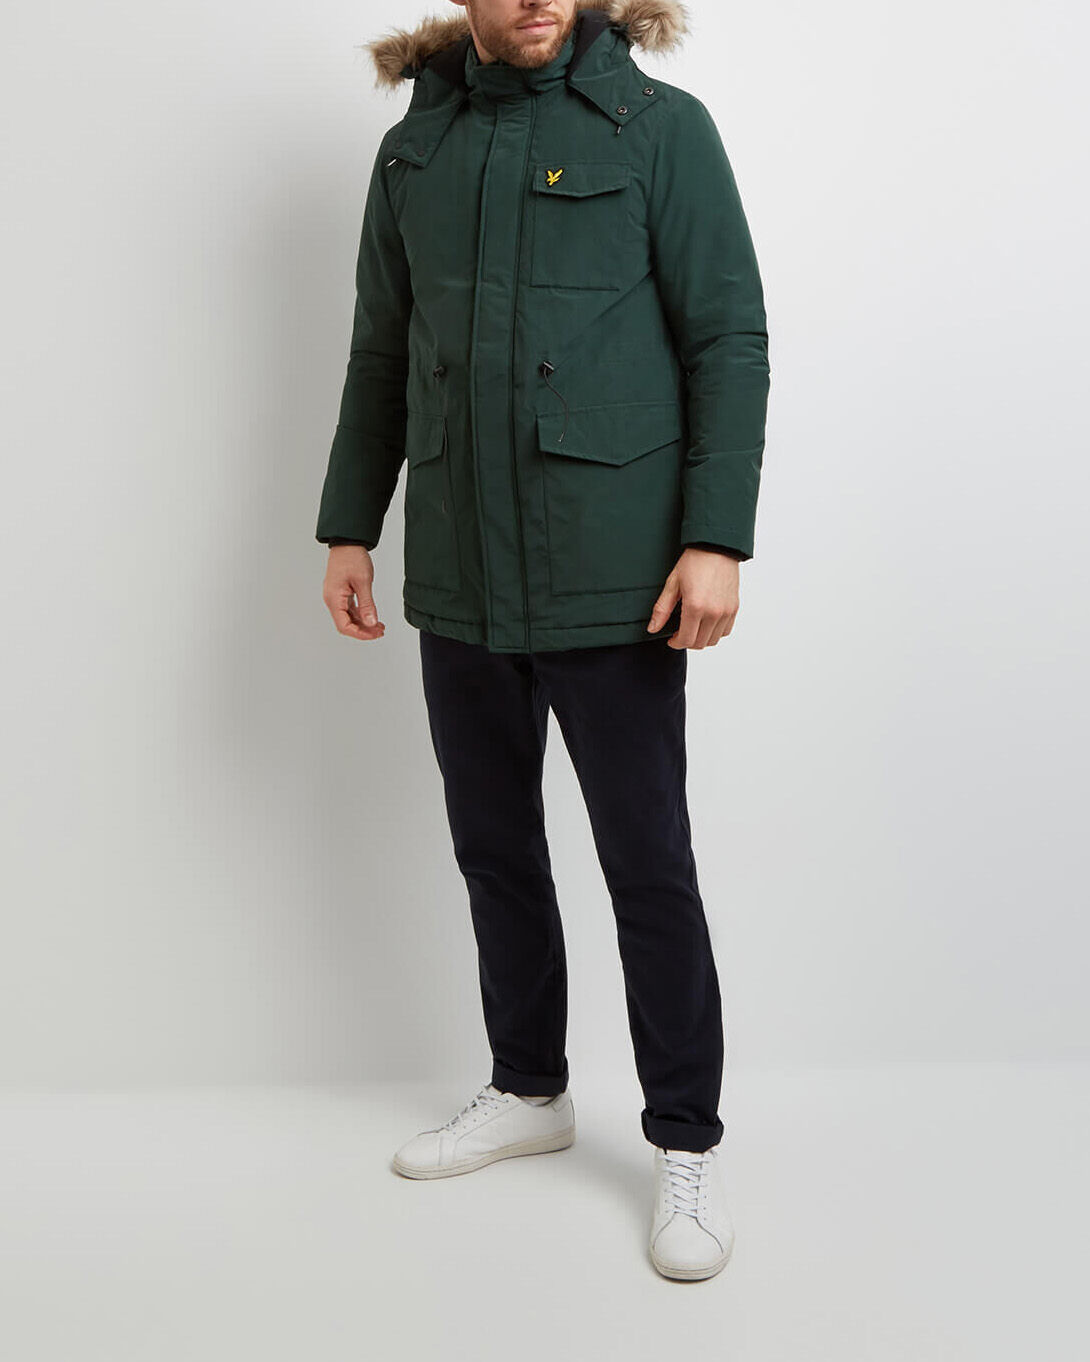 Lyle-and-Scott-Mens-Winterweight-Microfleece-Lined-Parka thumbnail 10